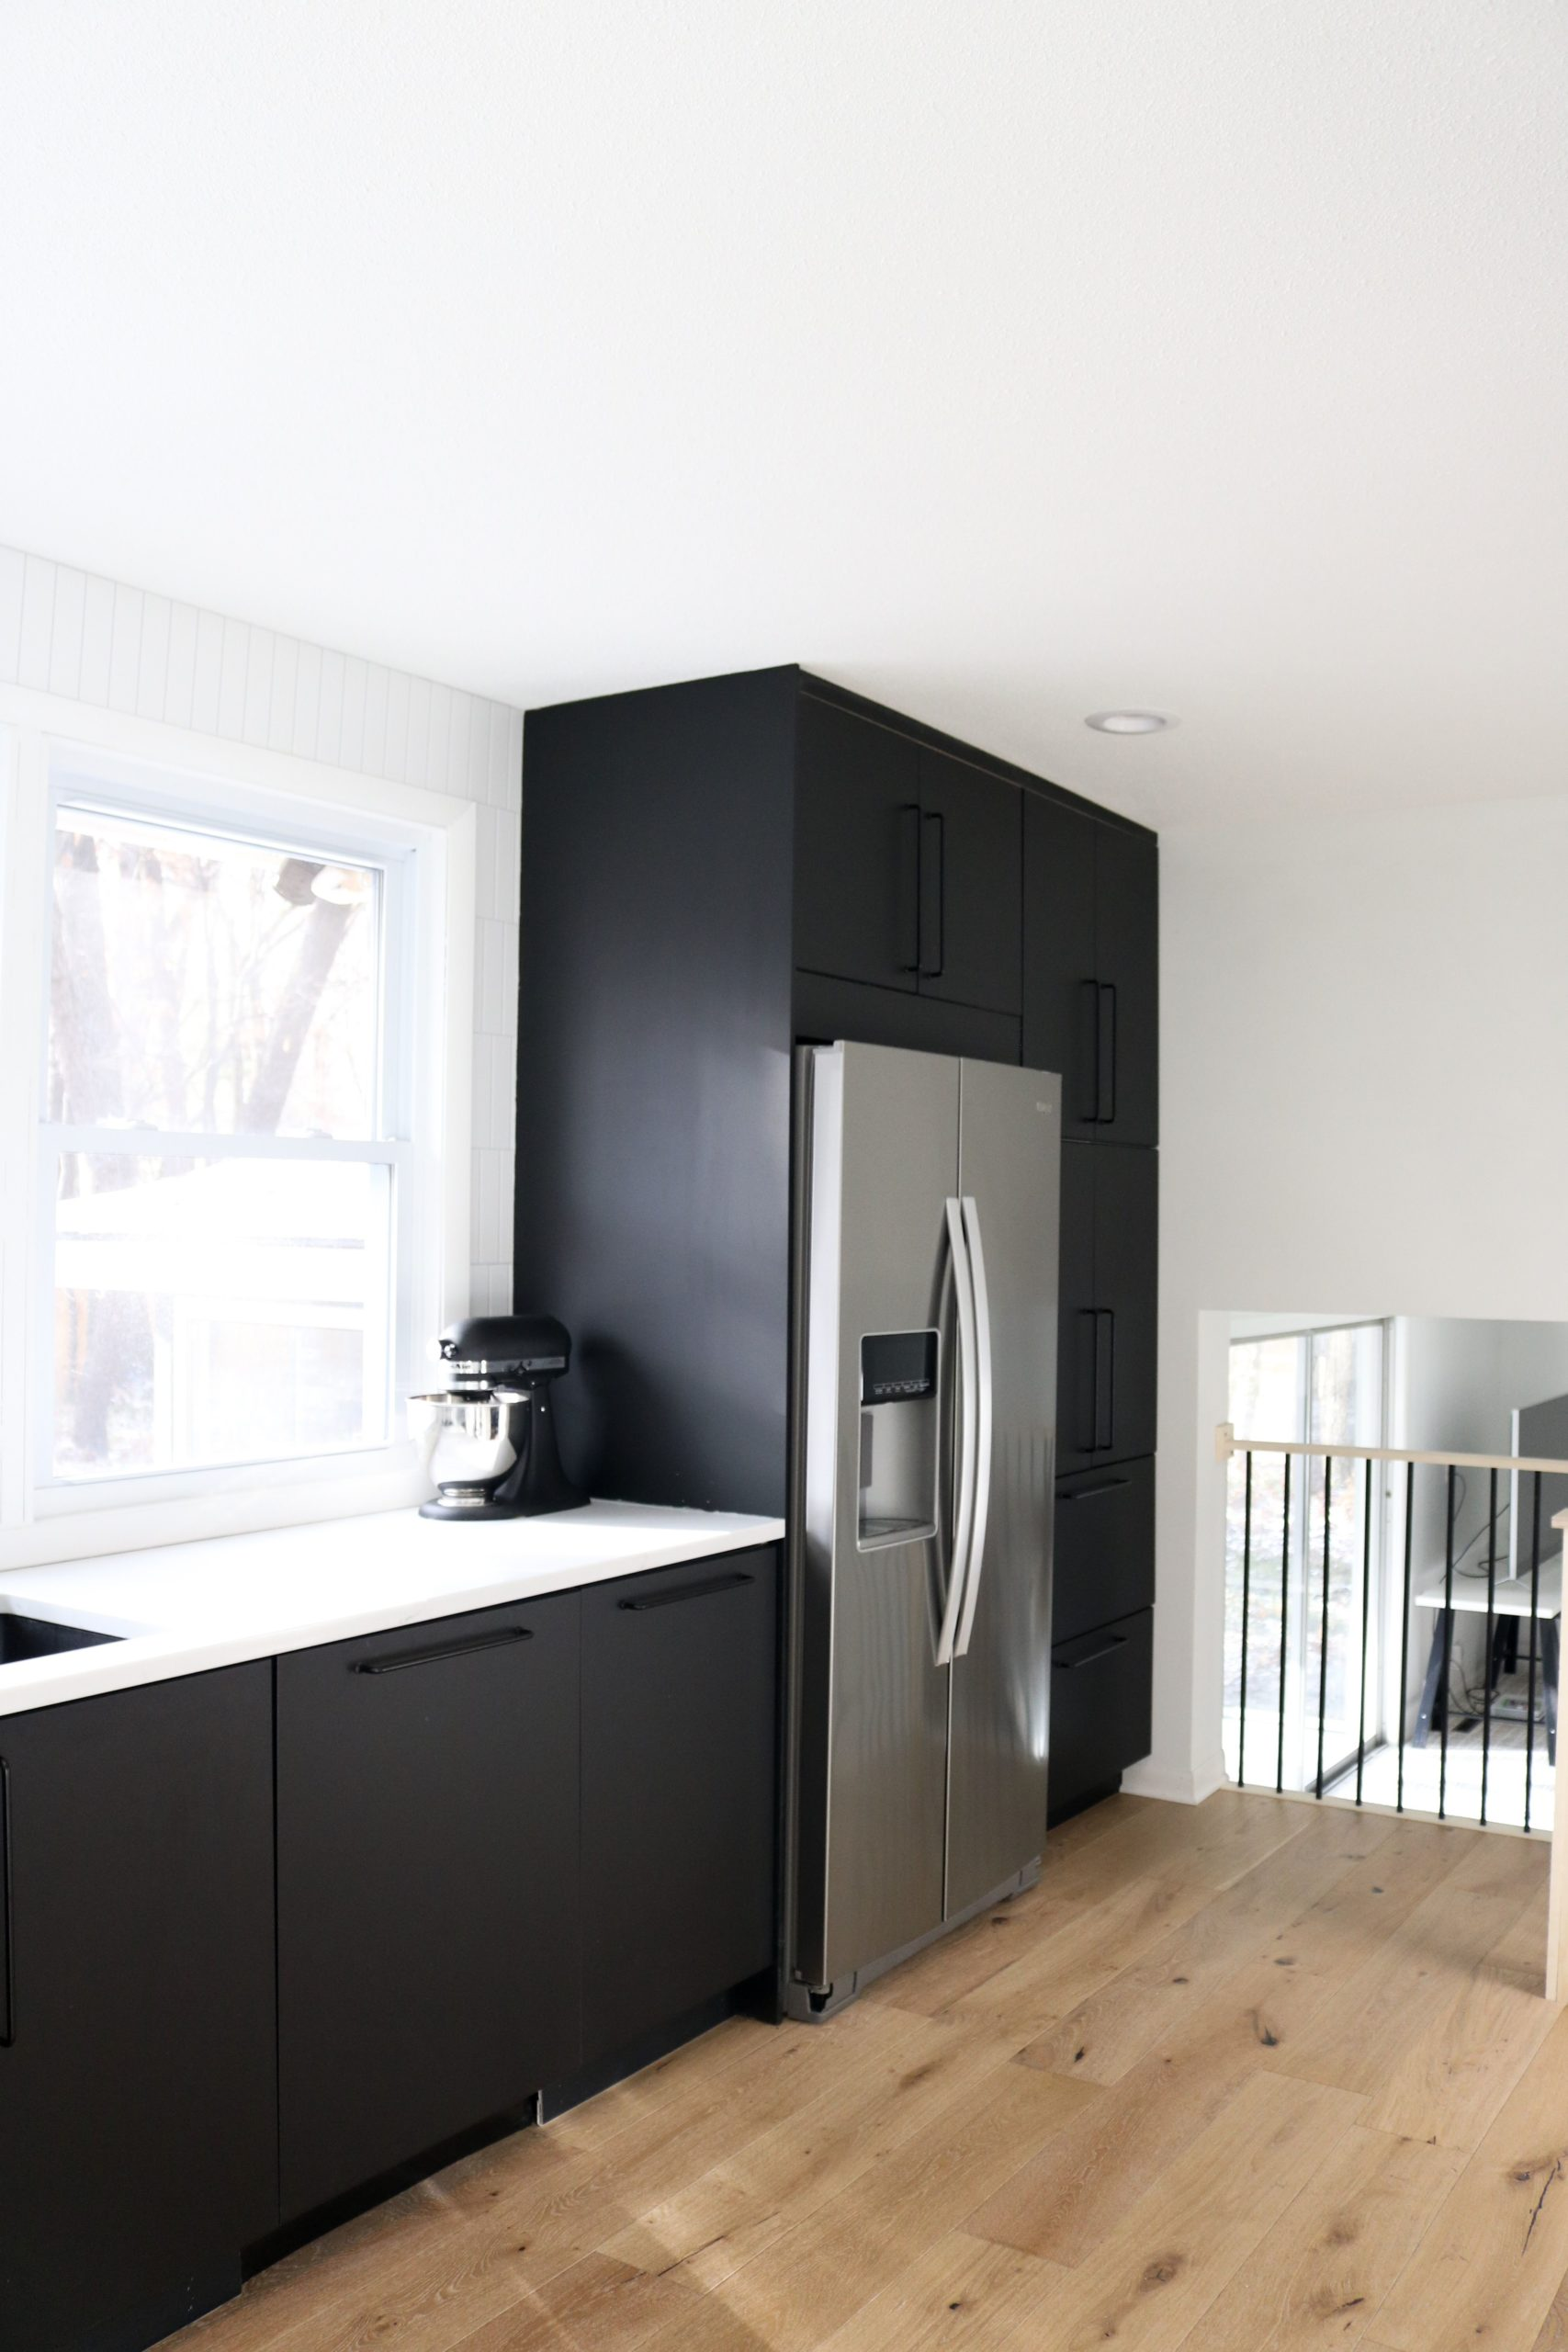 ikea kitchen cabinets reviews  IKEA Kungsbacka cabinets   Decor ...